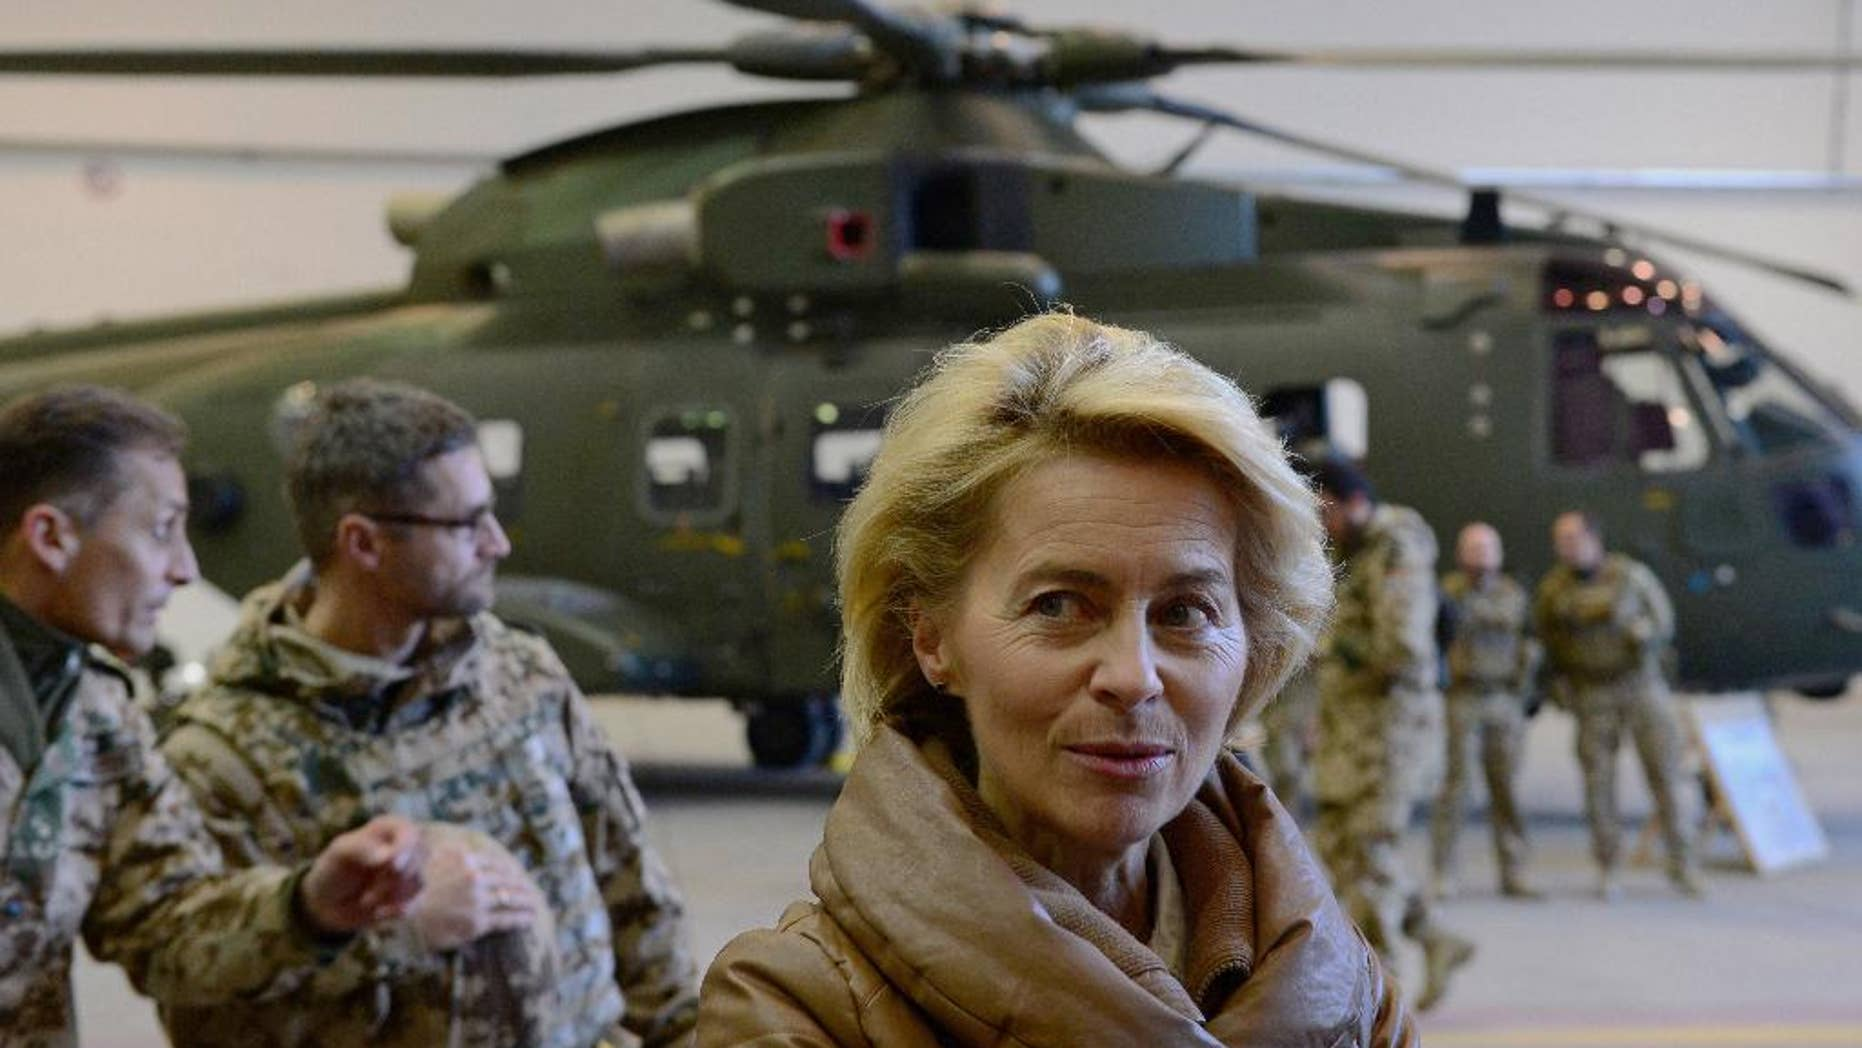 "FILE -  In this Dec. 13, 2014 file picture German Defense Minister Ursula von der Leyen, center, greets German helicopter pilots in a hangar at Camp Marmal in Mazar-i-Sharif, Afghanistan. Germany is affirming its growing role on the world stage in new security guidelines that mark another step away from its caution after World War II. A draft defense policy paper obtained by The Associated Press Tuesday  July 12, 2016 and due to be presented on Wednesday states that ""Germany is a globally highly connected country ... which has a responsibility to actively shape the global order.""  (John MacDougall, Pool Photo via AP, file)"